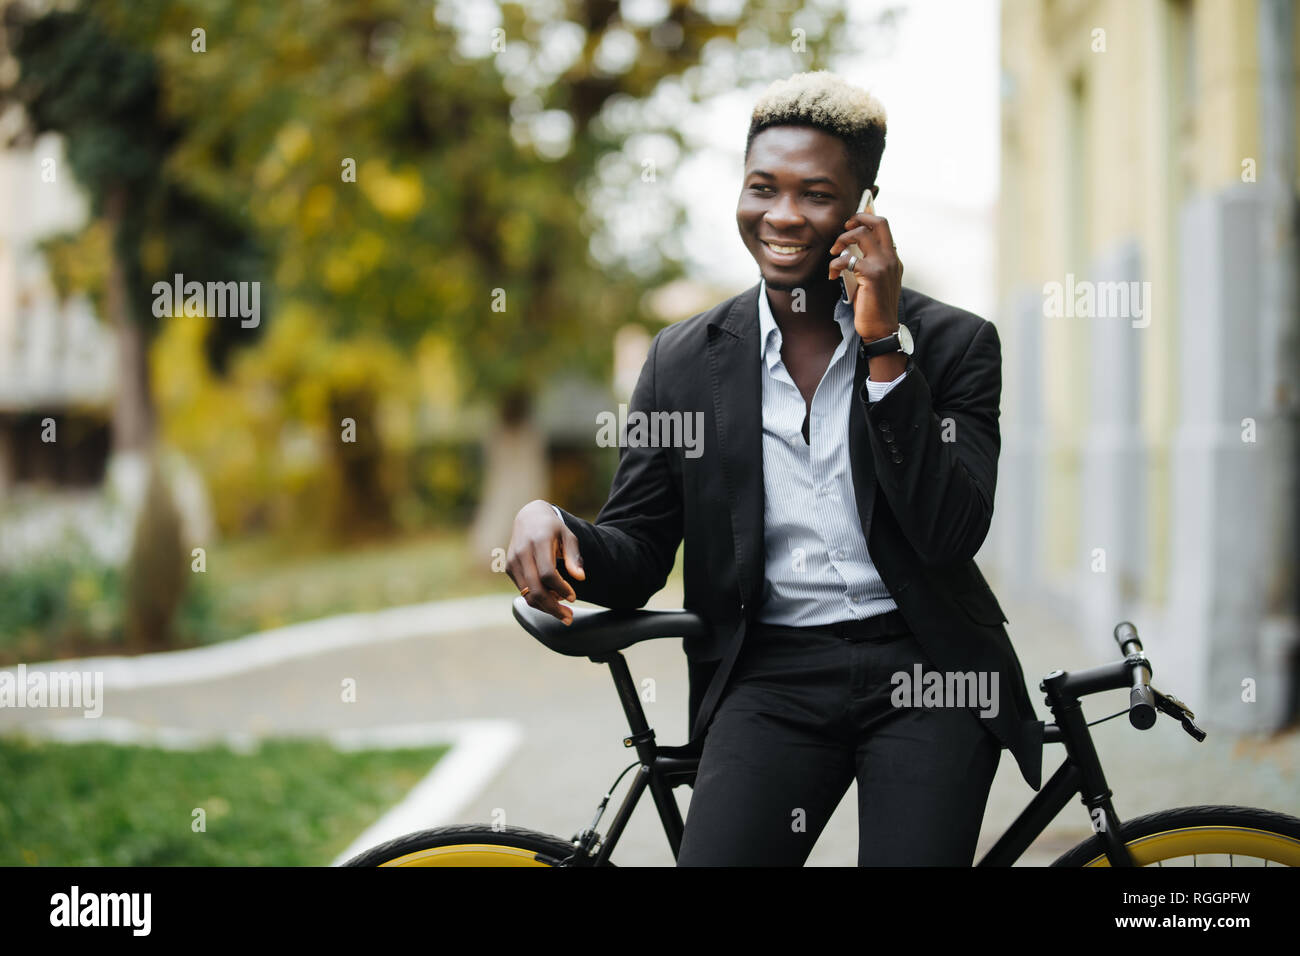 Portrait of handsome young man using mobile phone and fixed gear bicycle in the street. Stock Photo